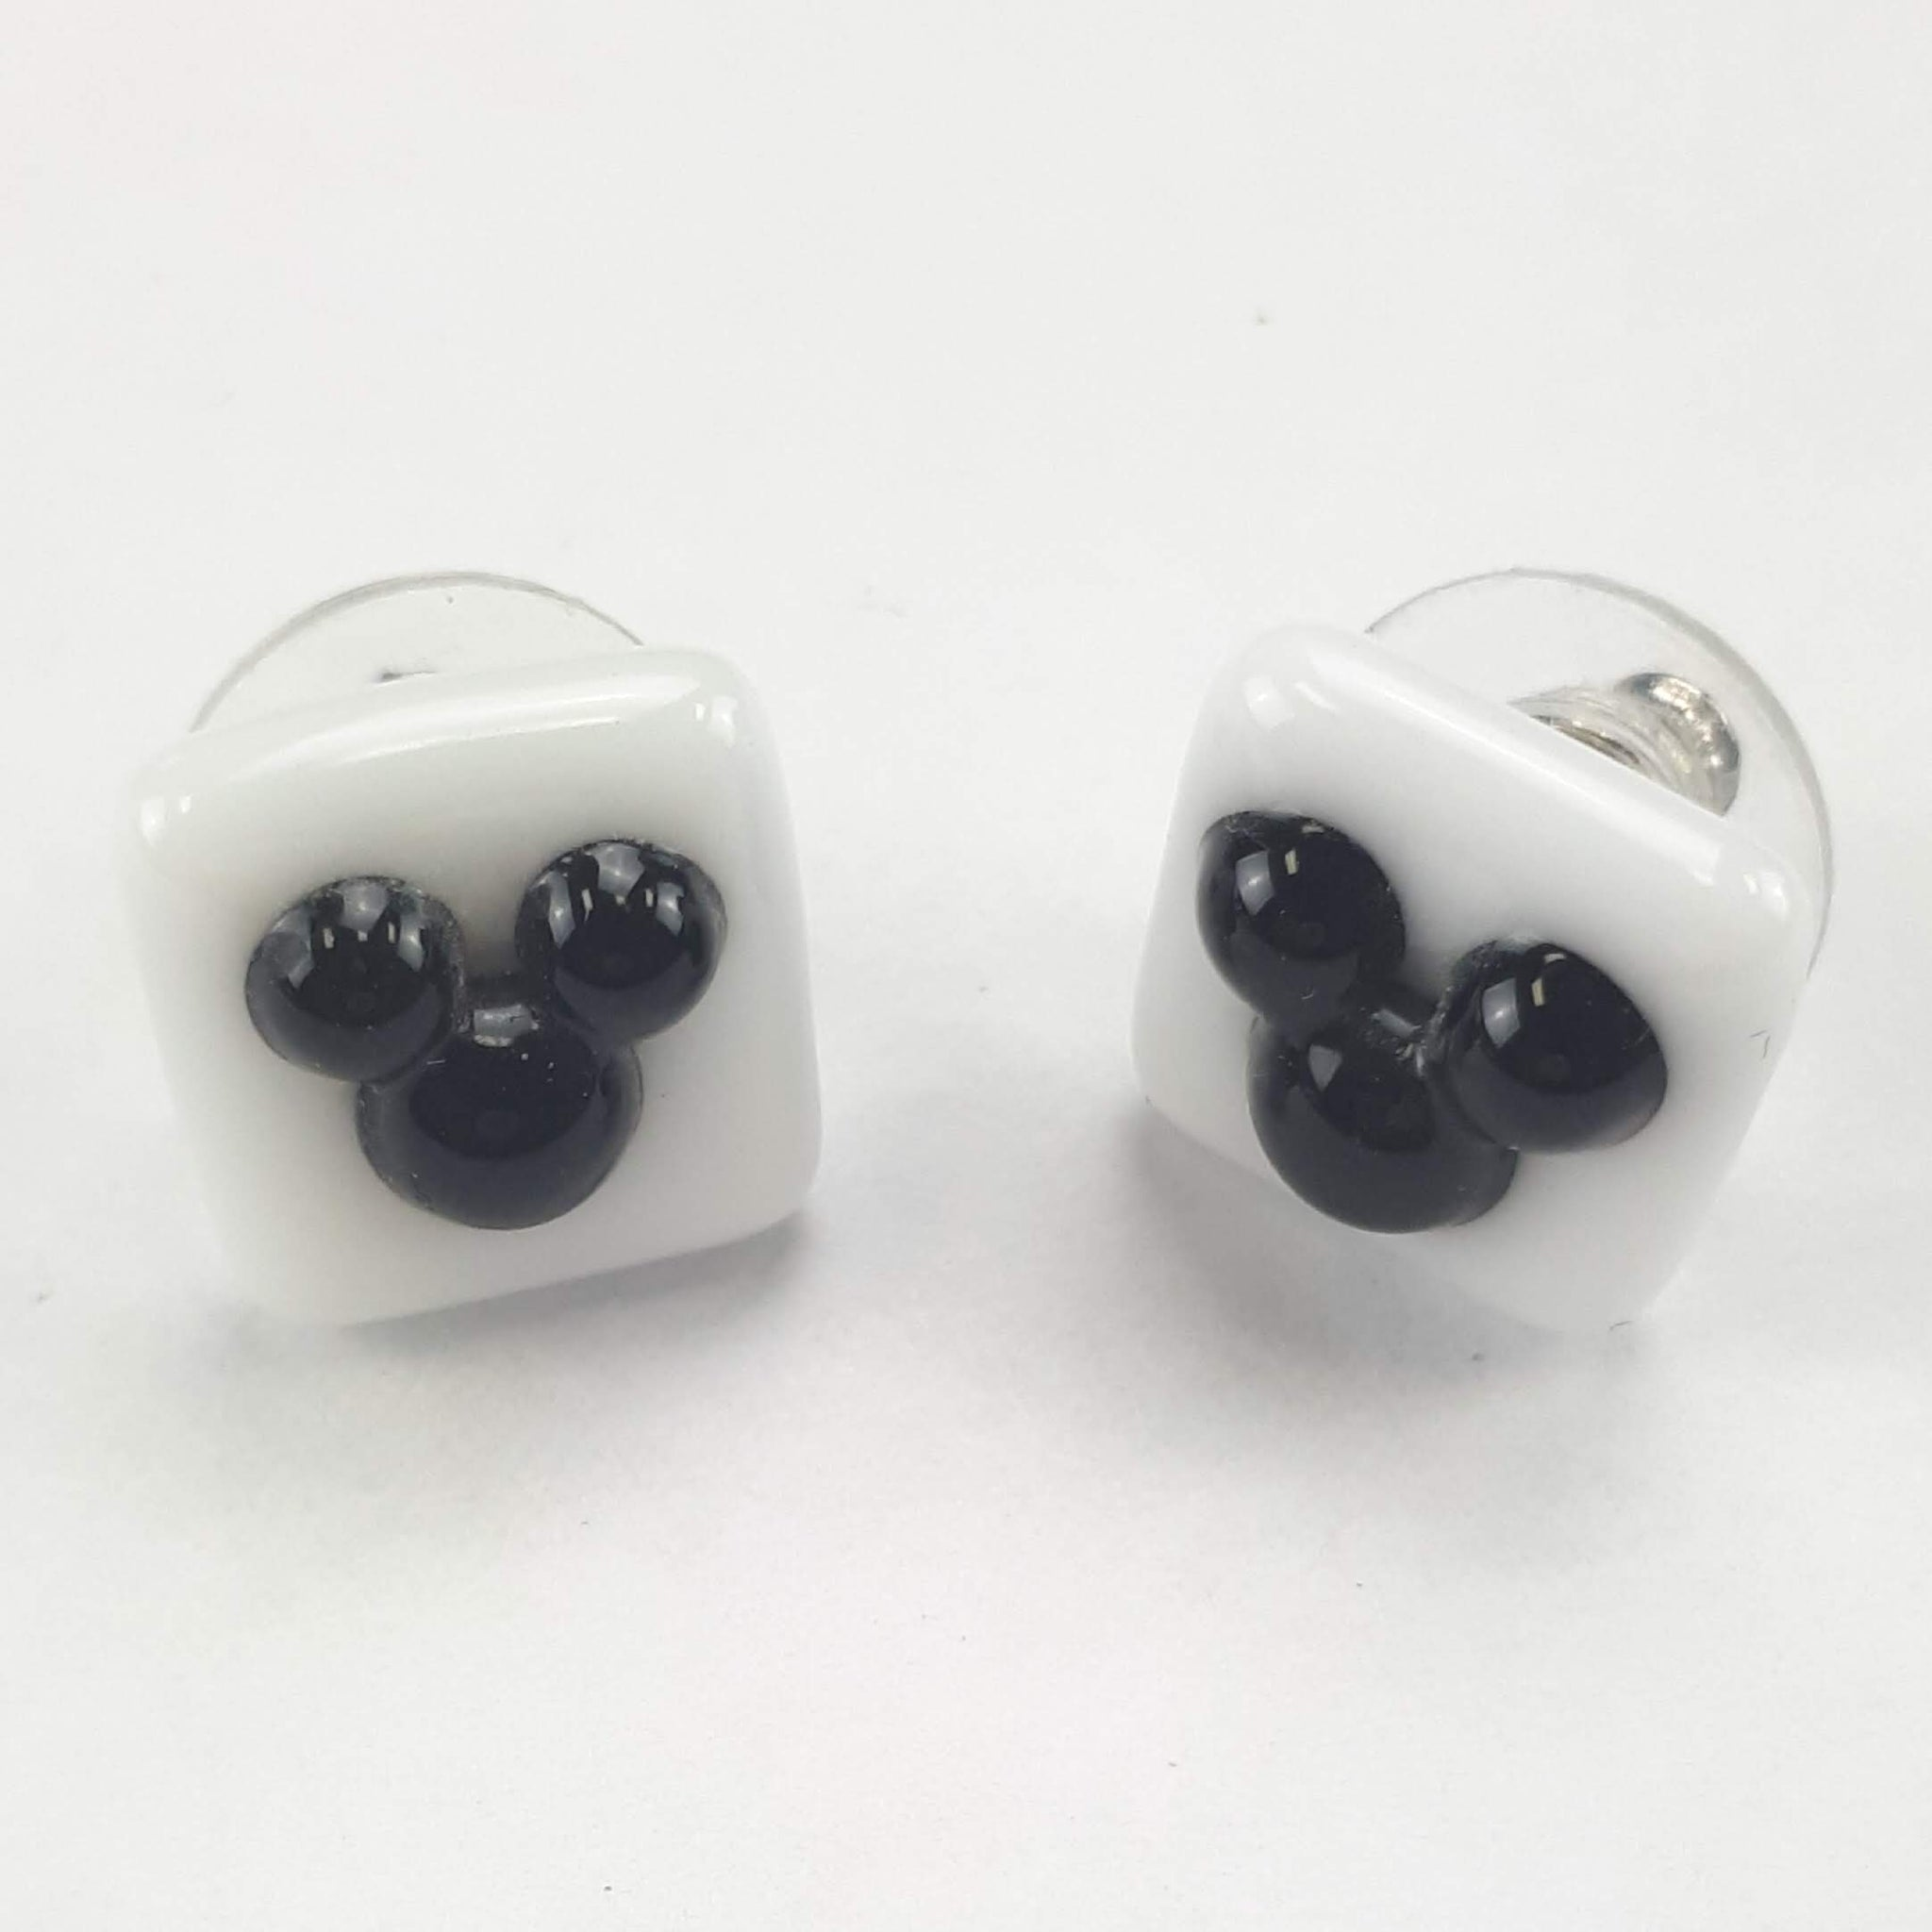 black and white mouse silhouette stud earrings on white background